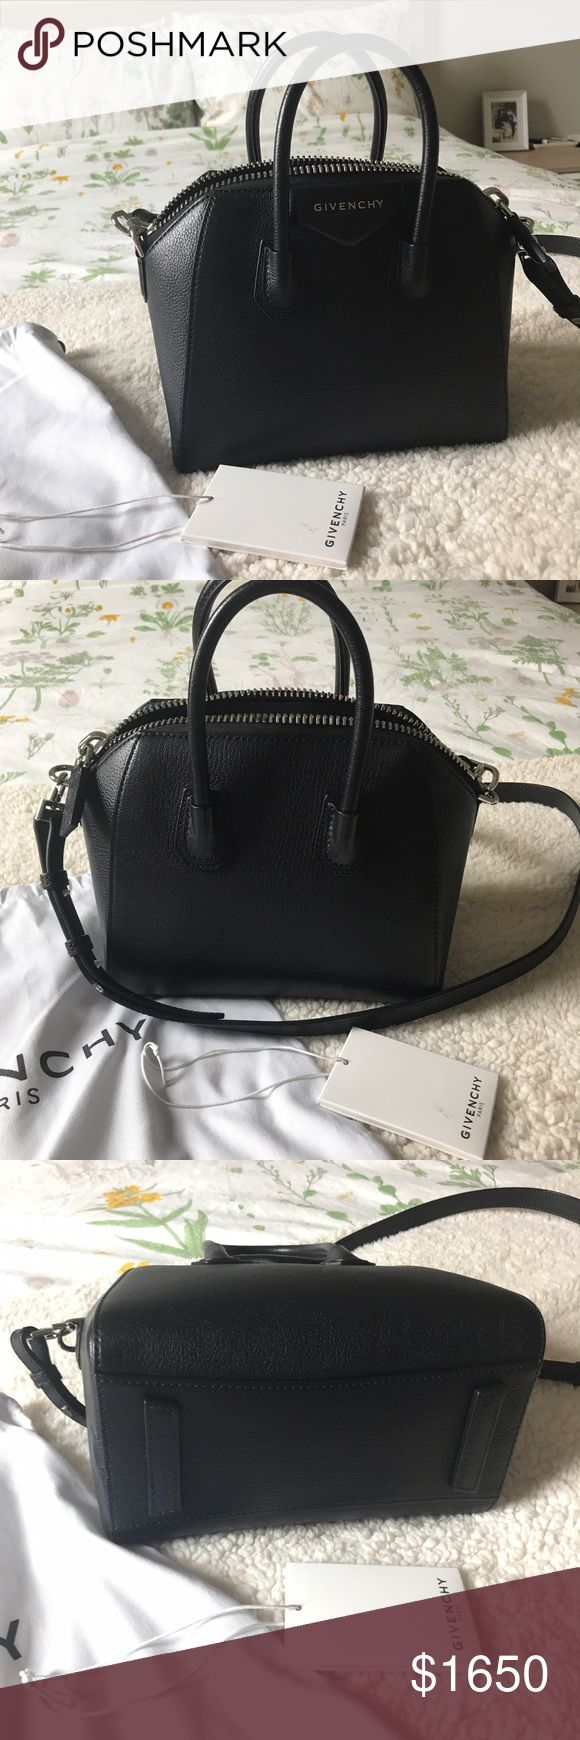 Givenchy antigona mini black. Excellent condition. Comes with dust bag and tag. Accept reasonable offers. $1450 via p ay p al Givenchy Bags Crossbody Bags